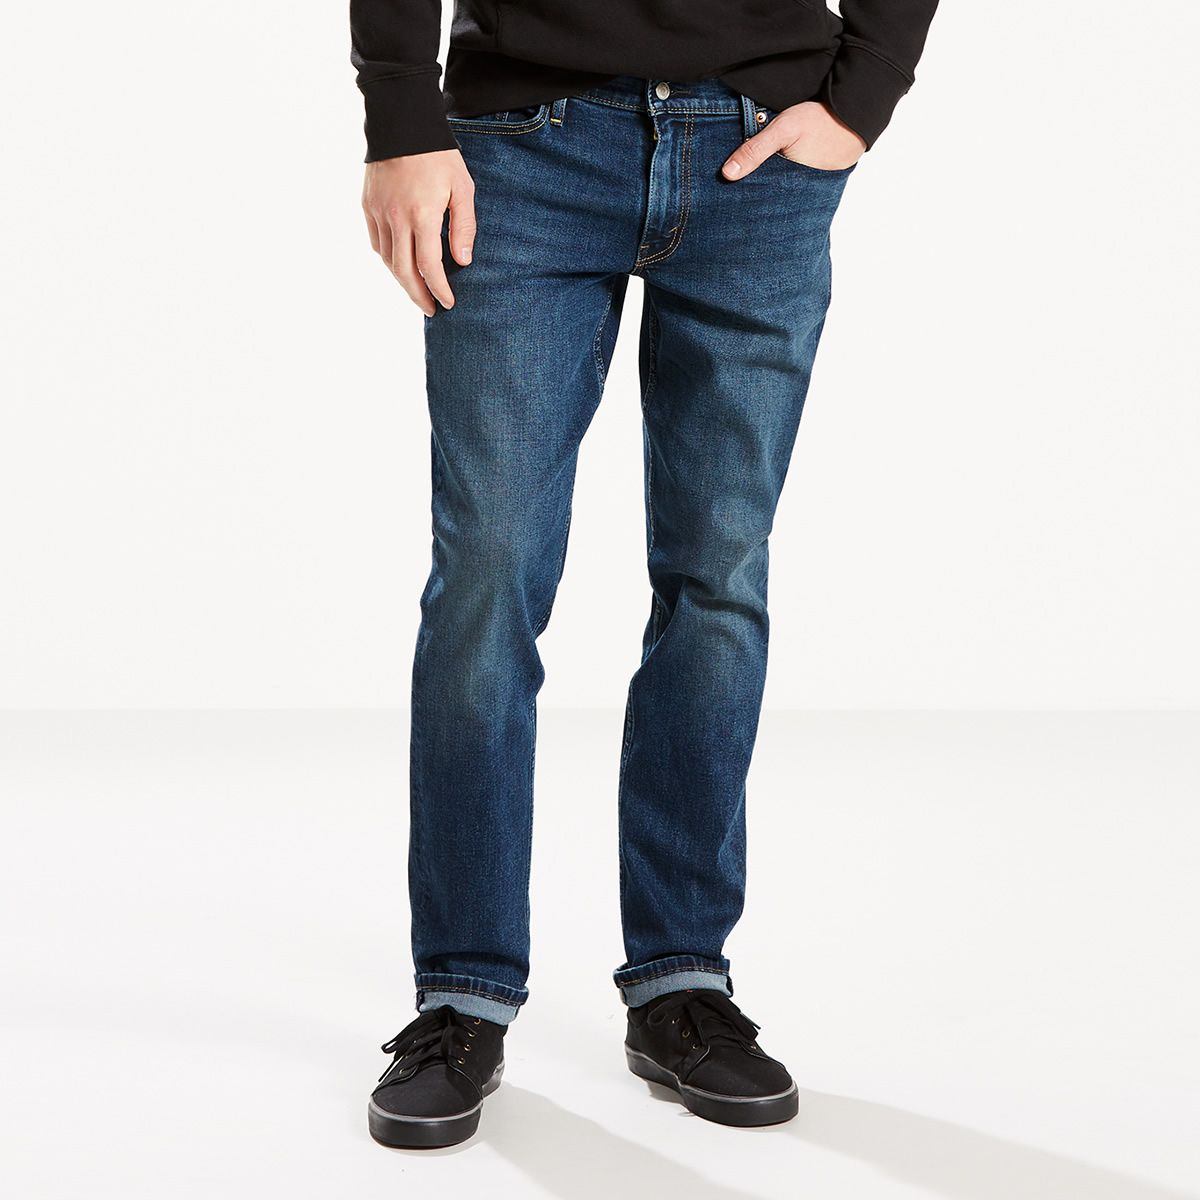 c6ca9ae5fc0 Levis Jeans for Men - Macy s